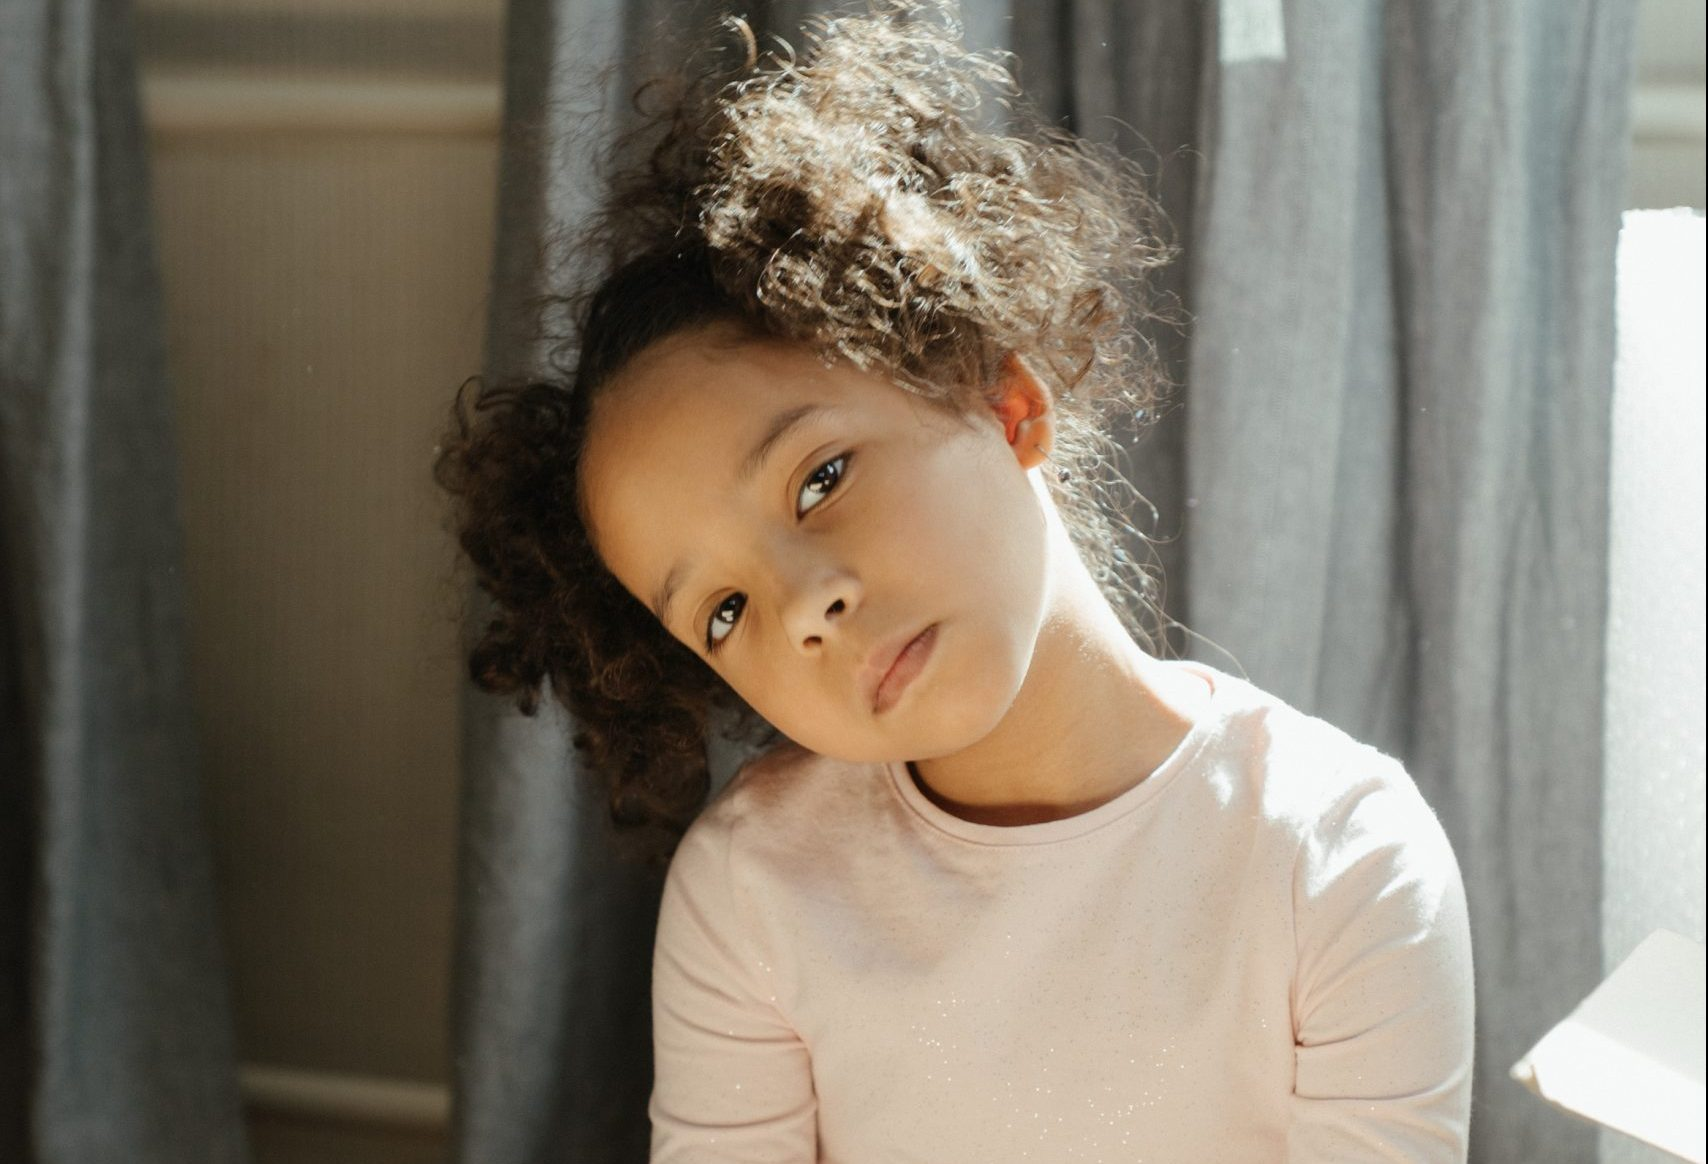 Black Girls: Forced to Grow Up too Soon